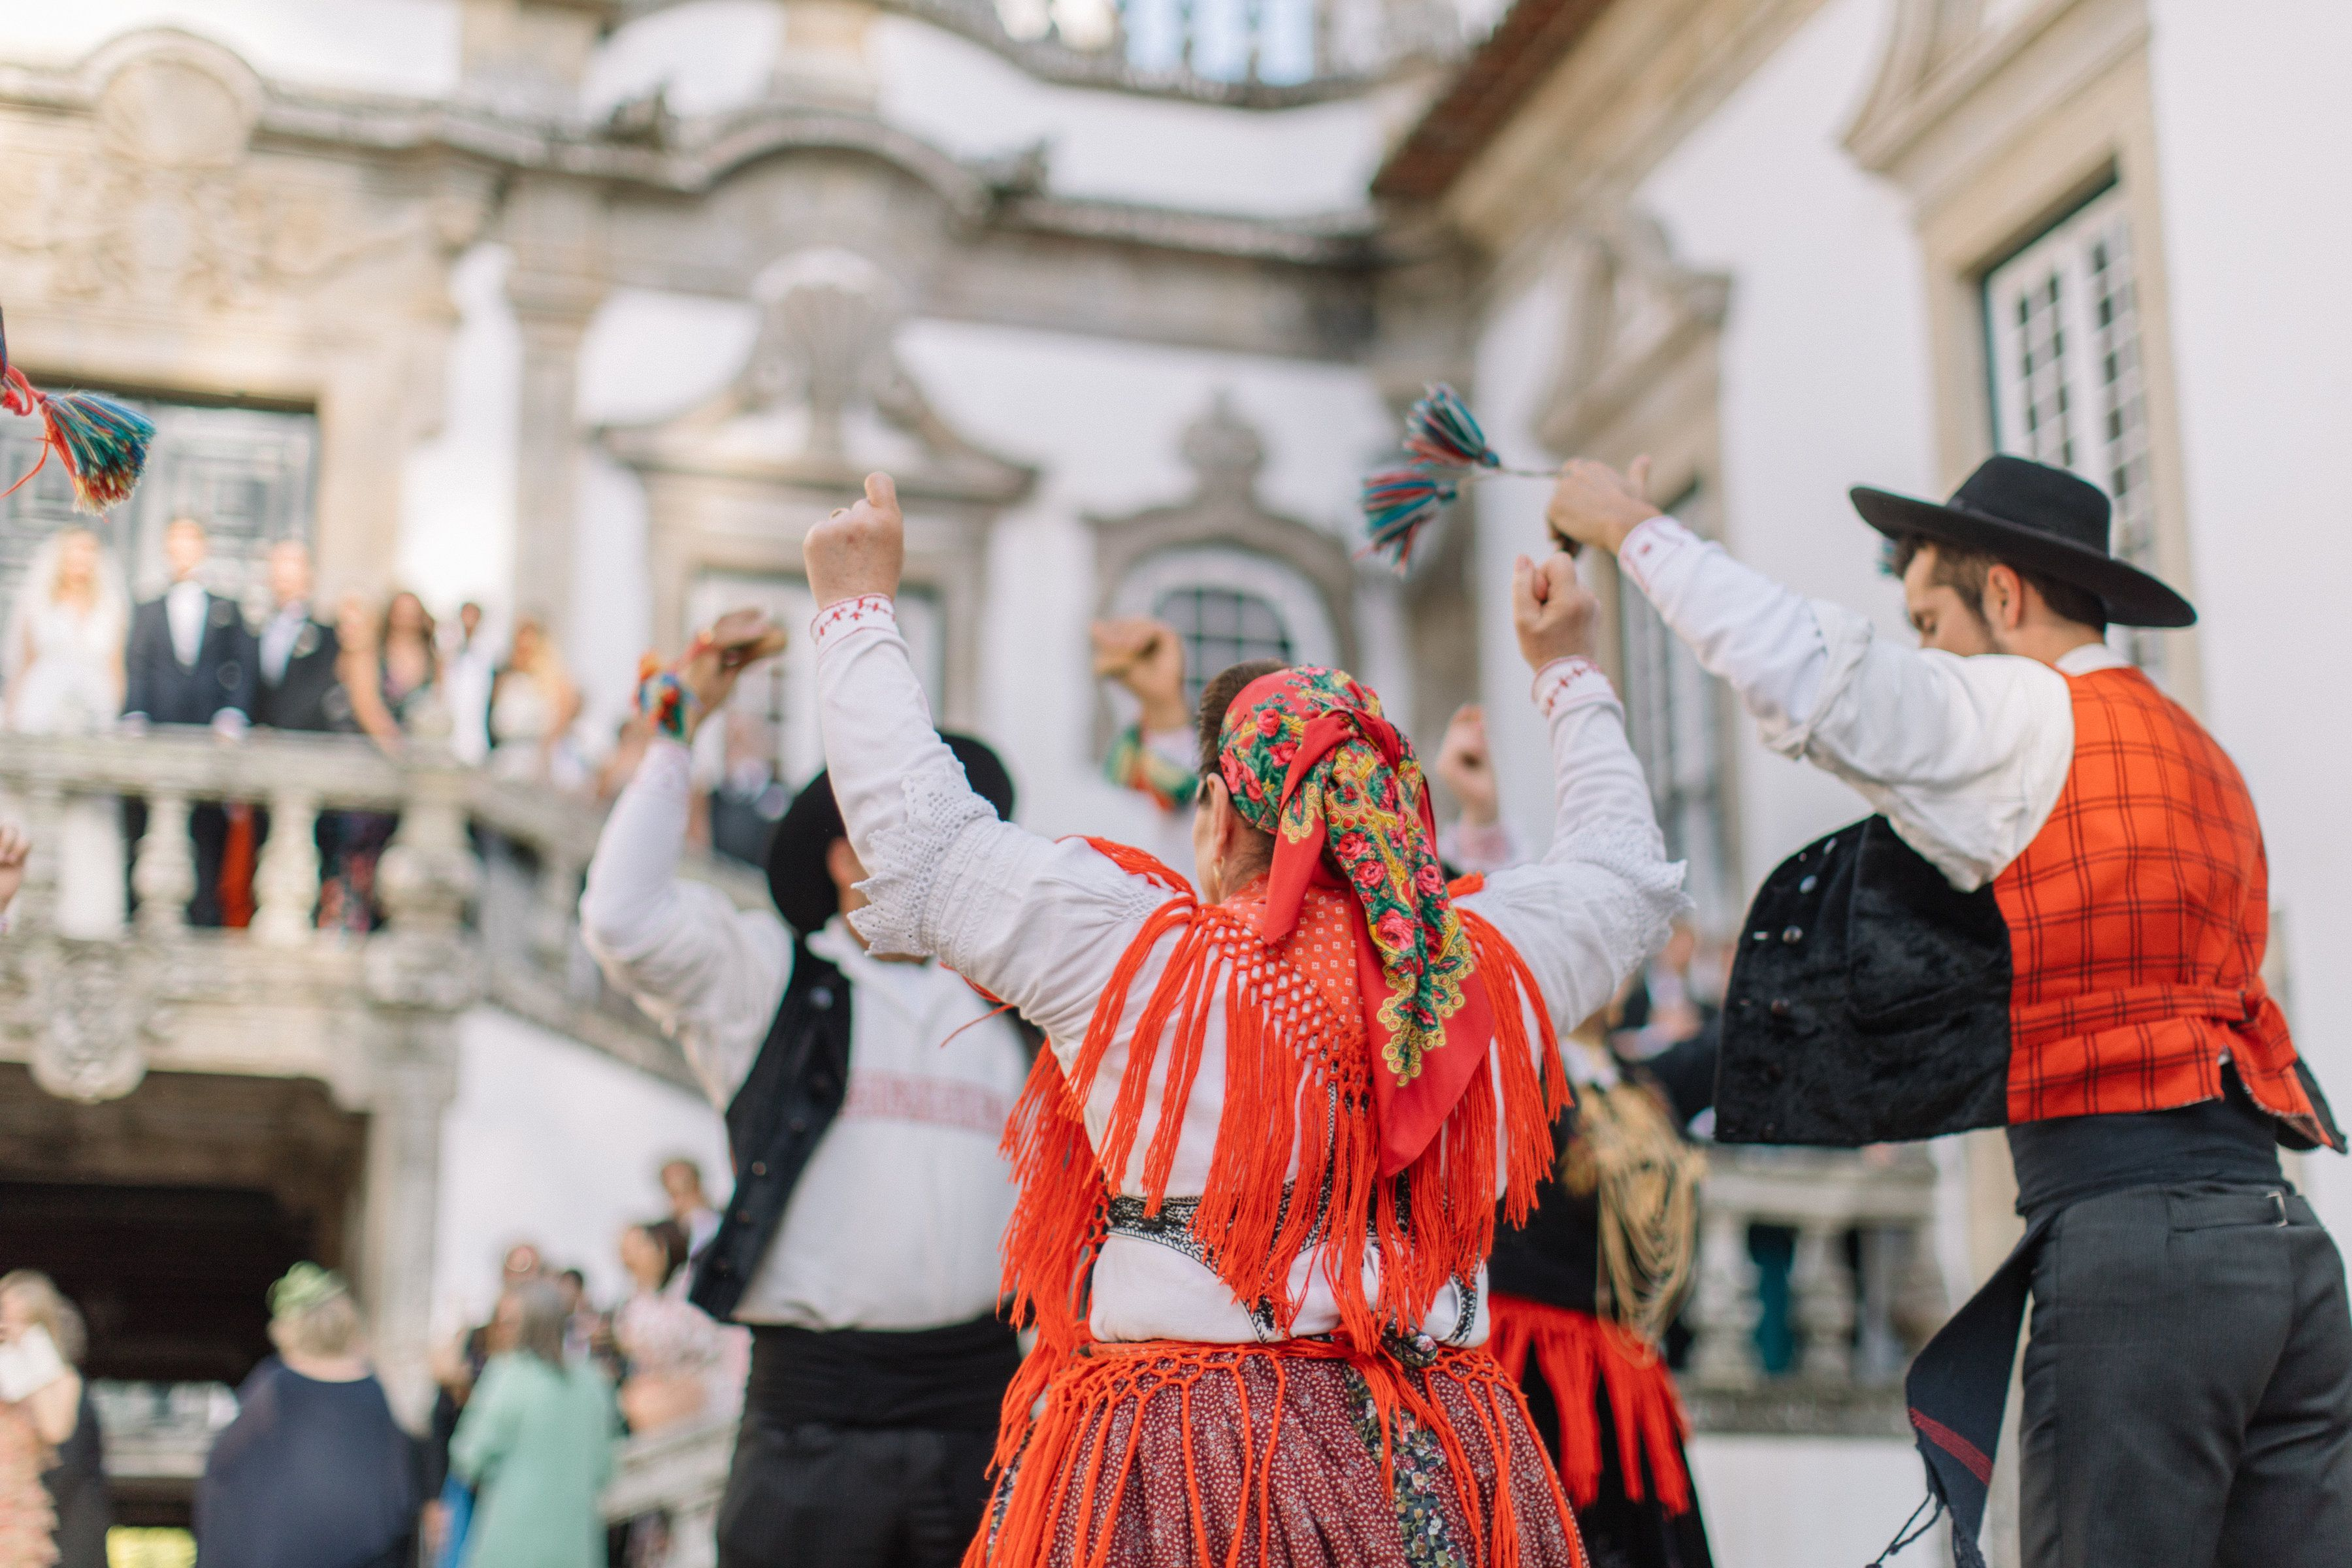 Portuguese Traditional Dances From Minho Region